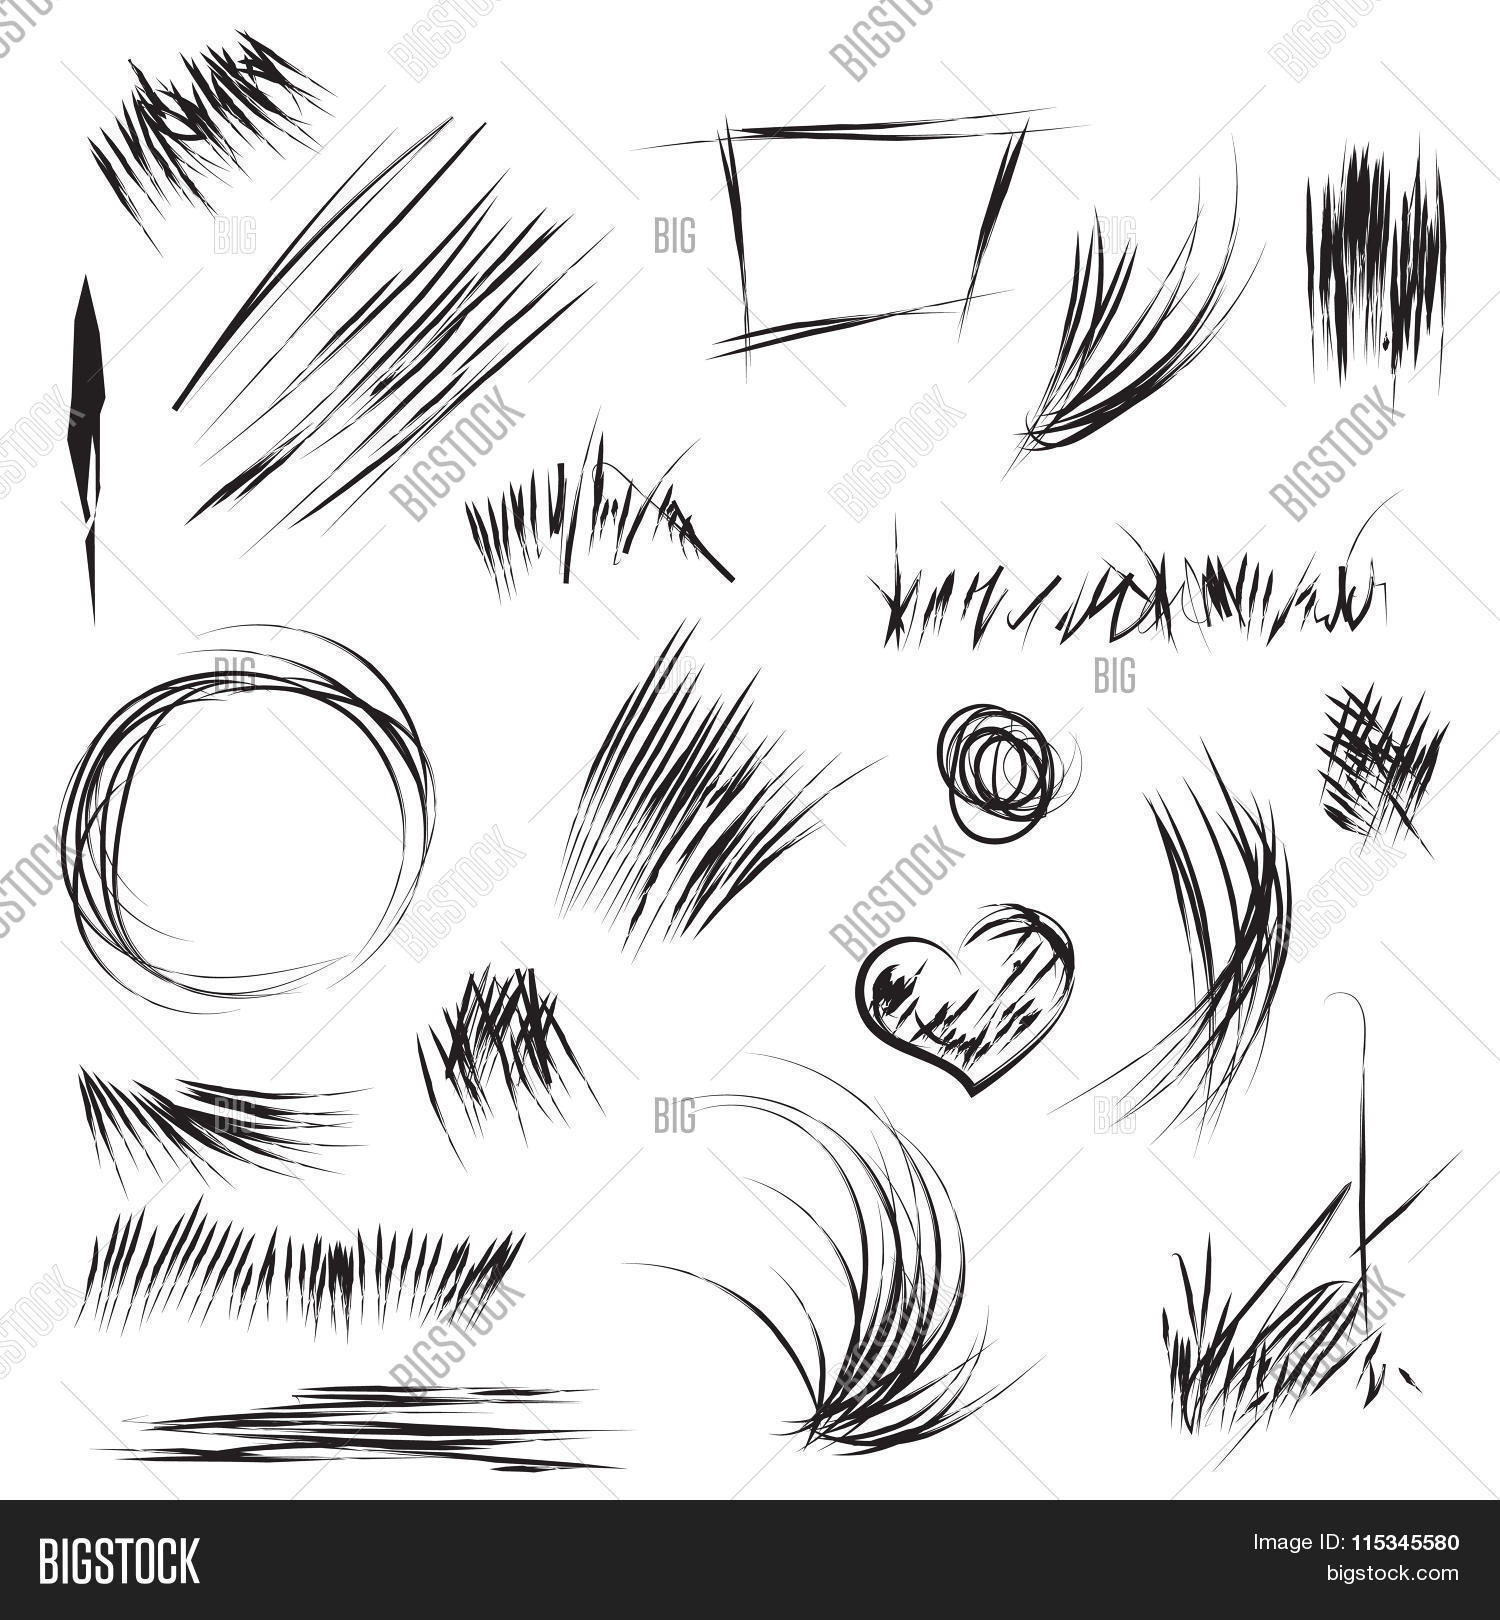 Hand drawn scribble and sketch shapes in vector abstract line and scribble for texture